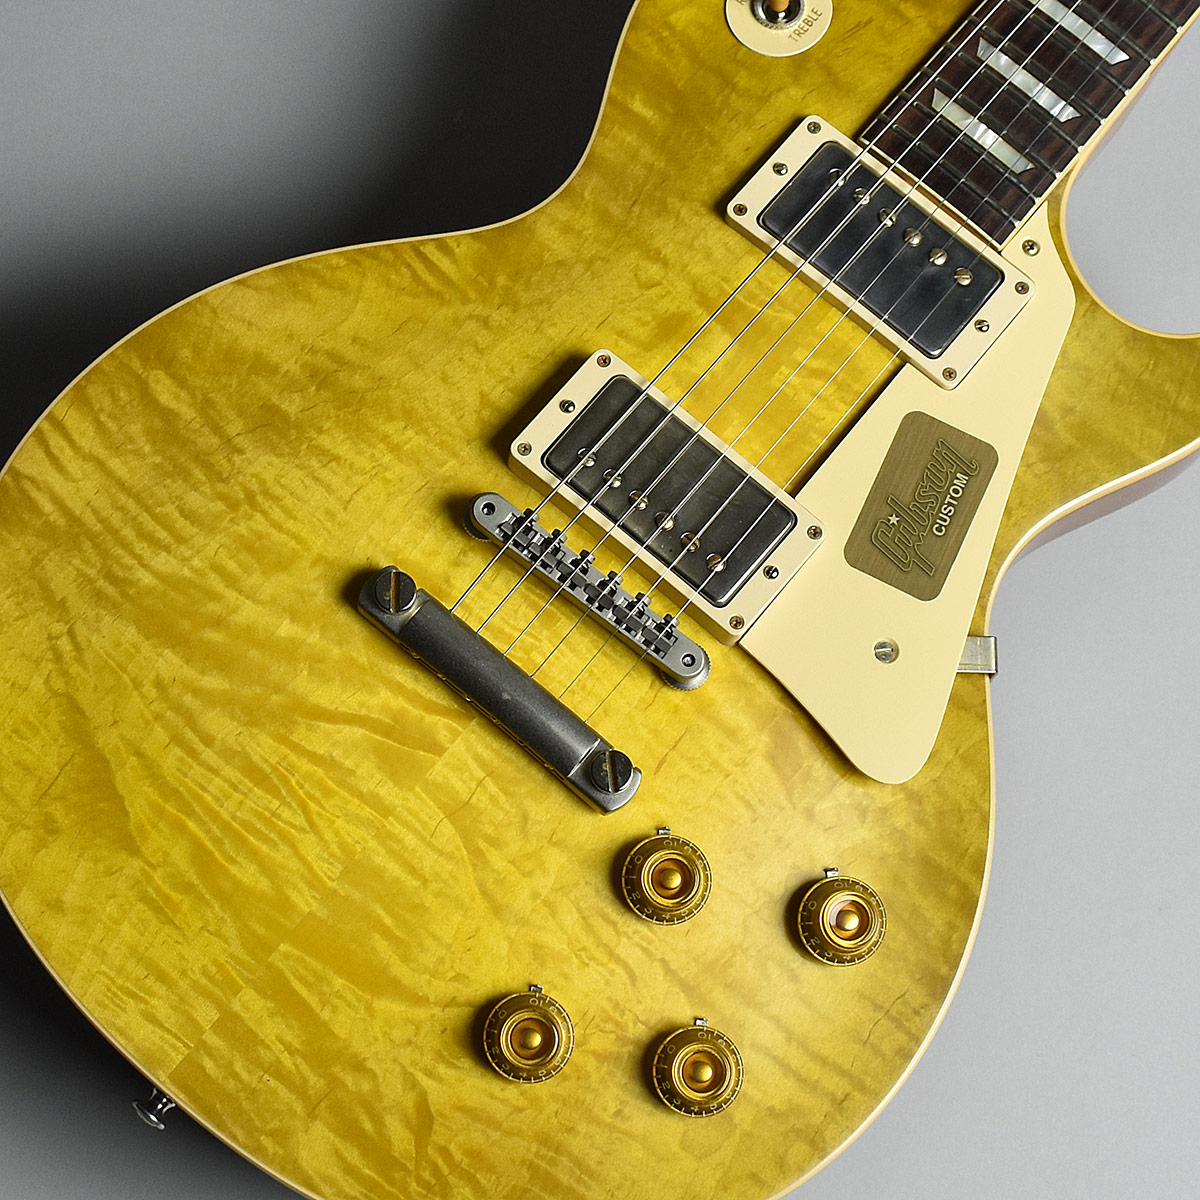 1959 Les Paul Standard VOSのボディトップ-アップ画像